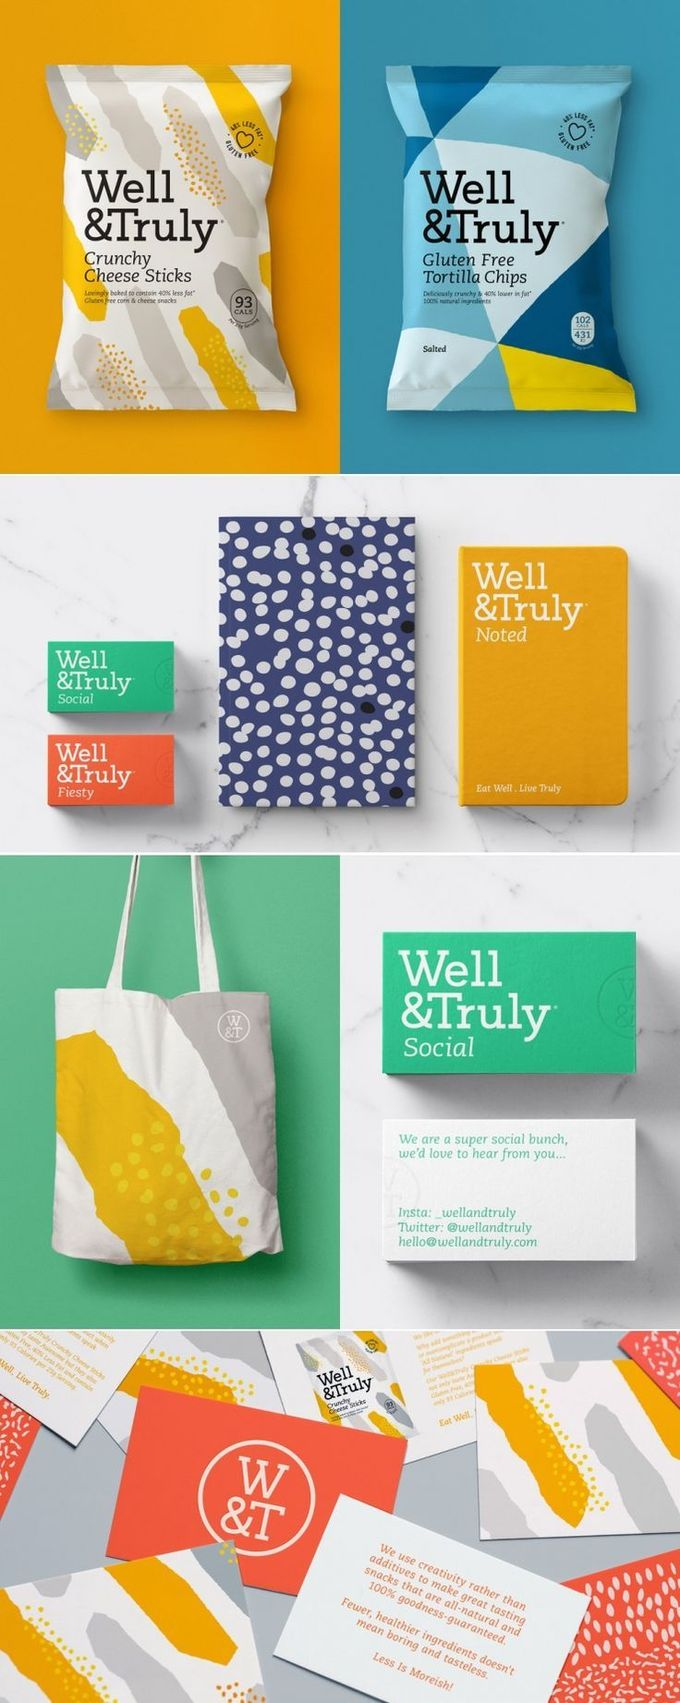 Well & Truly is Here To Change Up The Healthy Snack Market With Colorful Packaging — The Dieline | Packaging & Branding Design & Innovation News